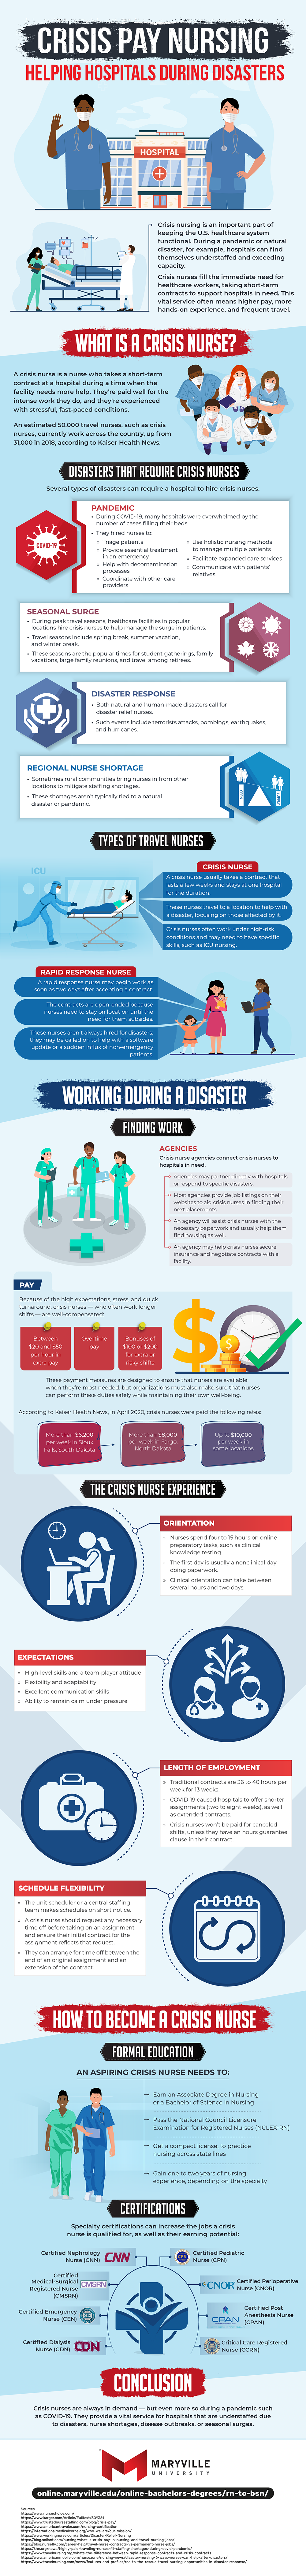 Crisis pay nursing is needed more than ever, as many disasters require nurses' help.